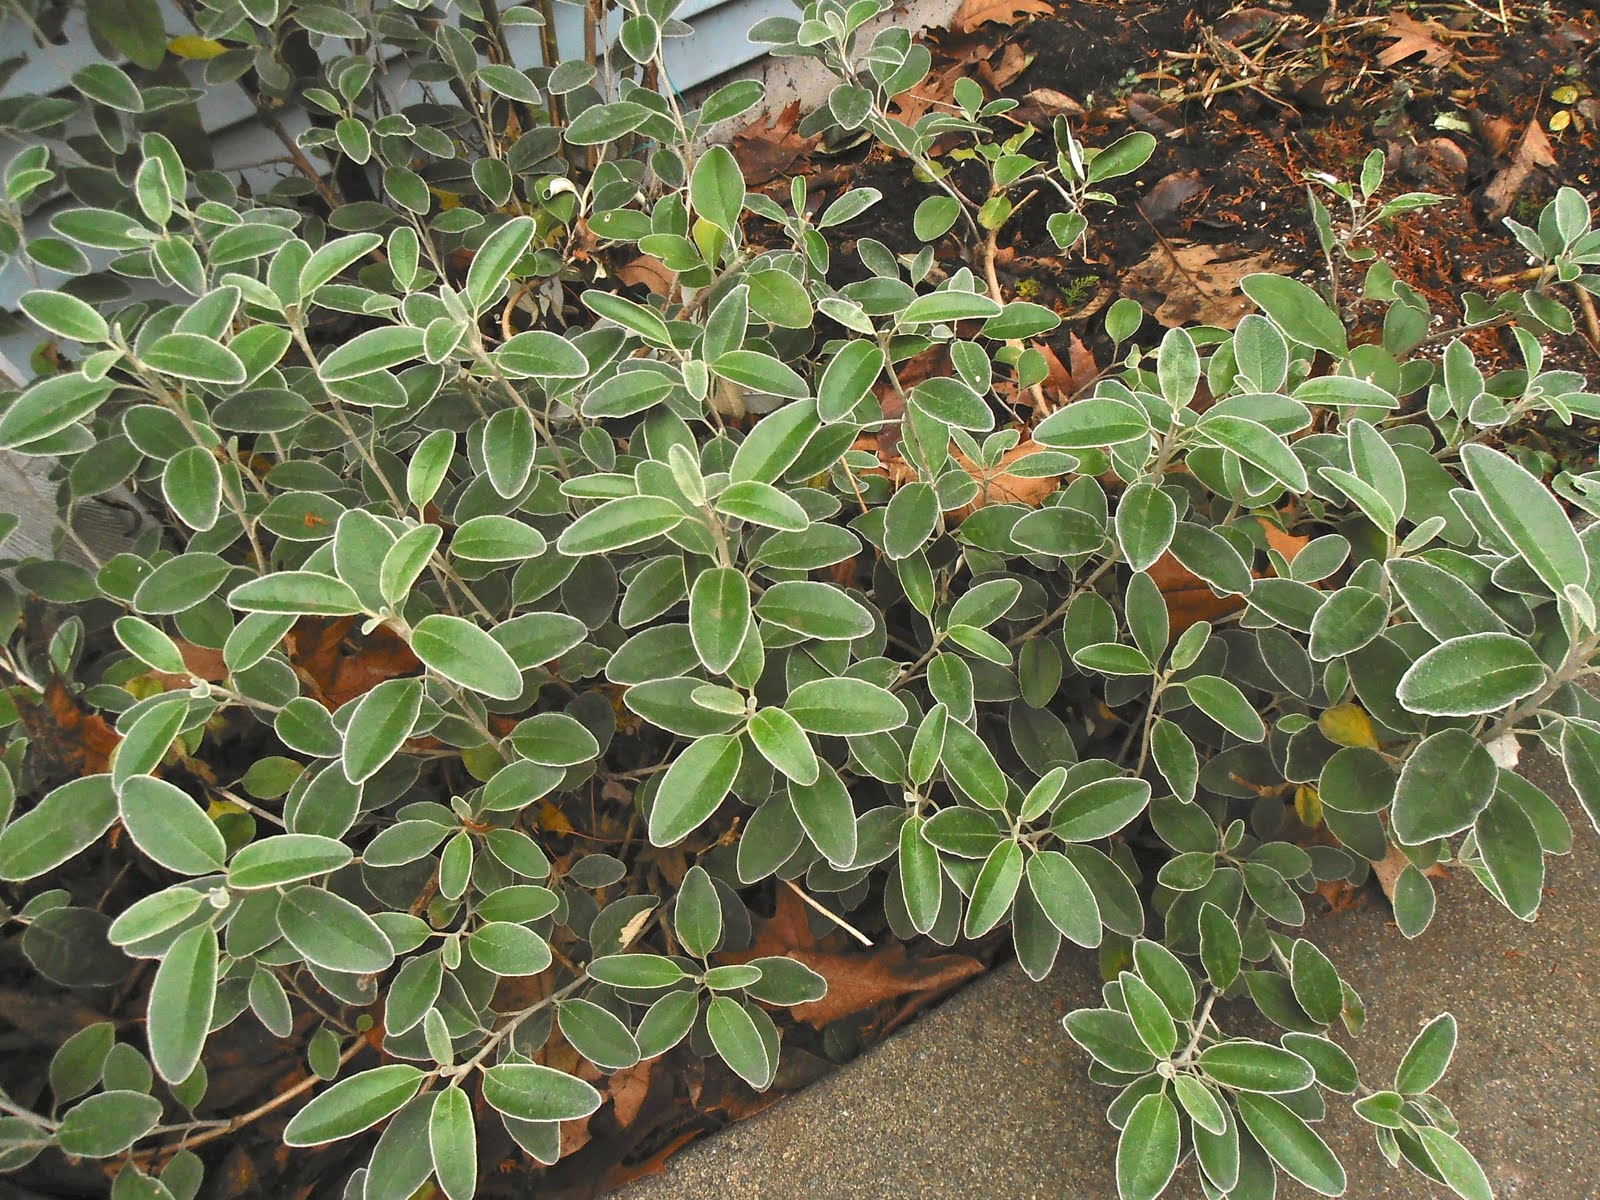 Winter plants for the pacific northwest that bloomin garden it hasnt flowered for me although it is supposed to have yellow daisy like flowers i love this shrub for its gray leaves izmirmasajfo